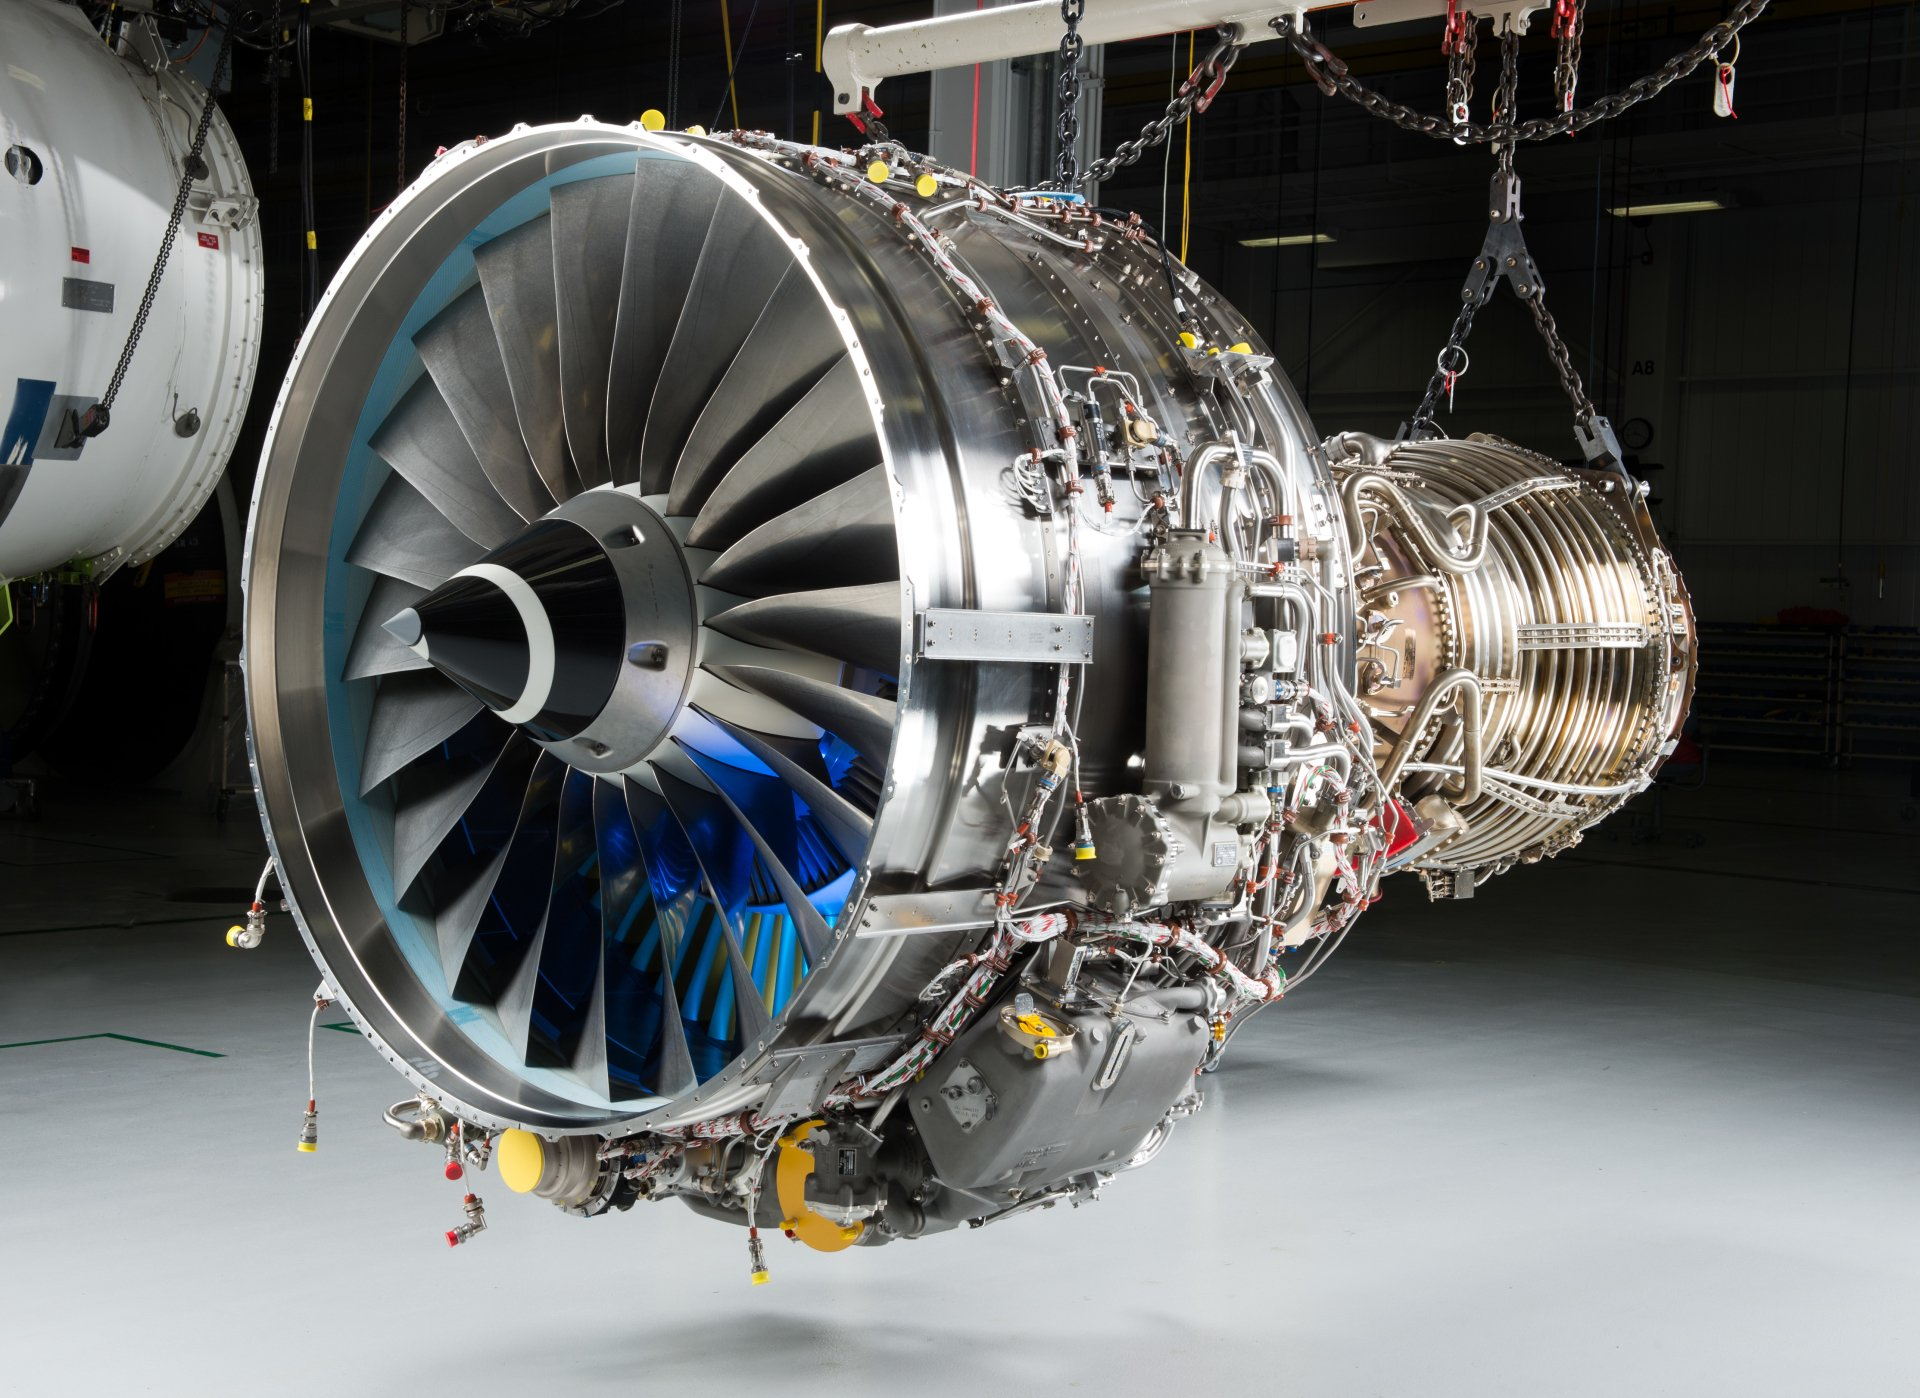 Engine 4k ultra hd wallpaper background image 4456x3244 id 614444 wallpaper abyss - Jet engine wallpaper ...